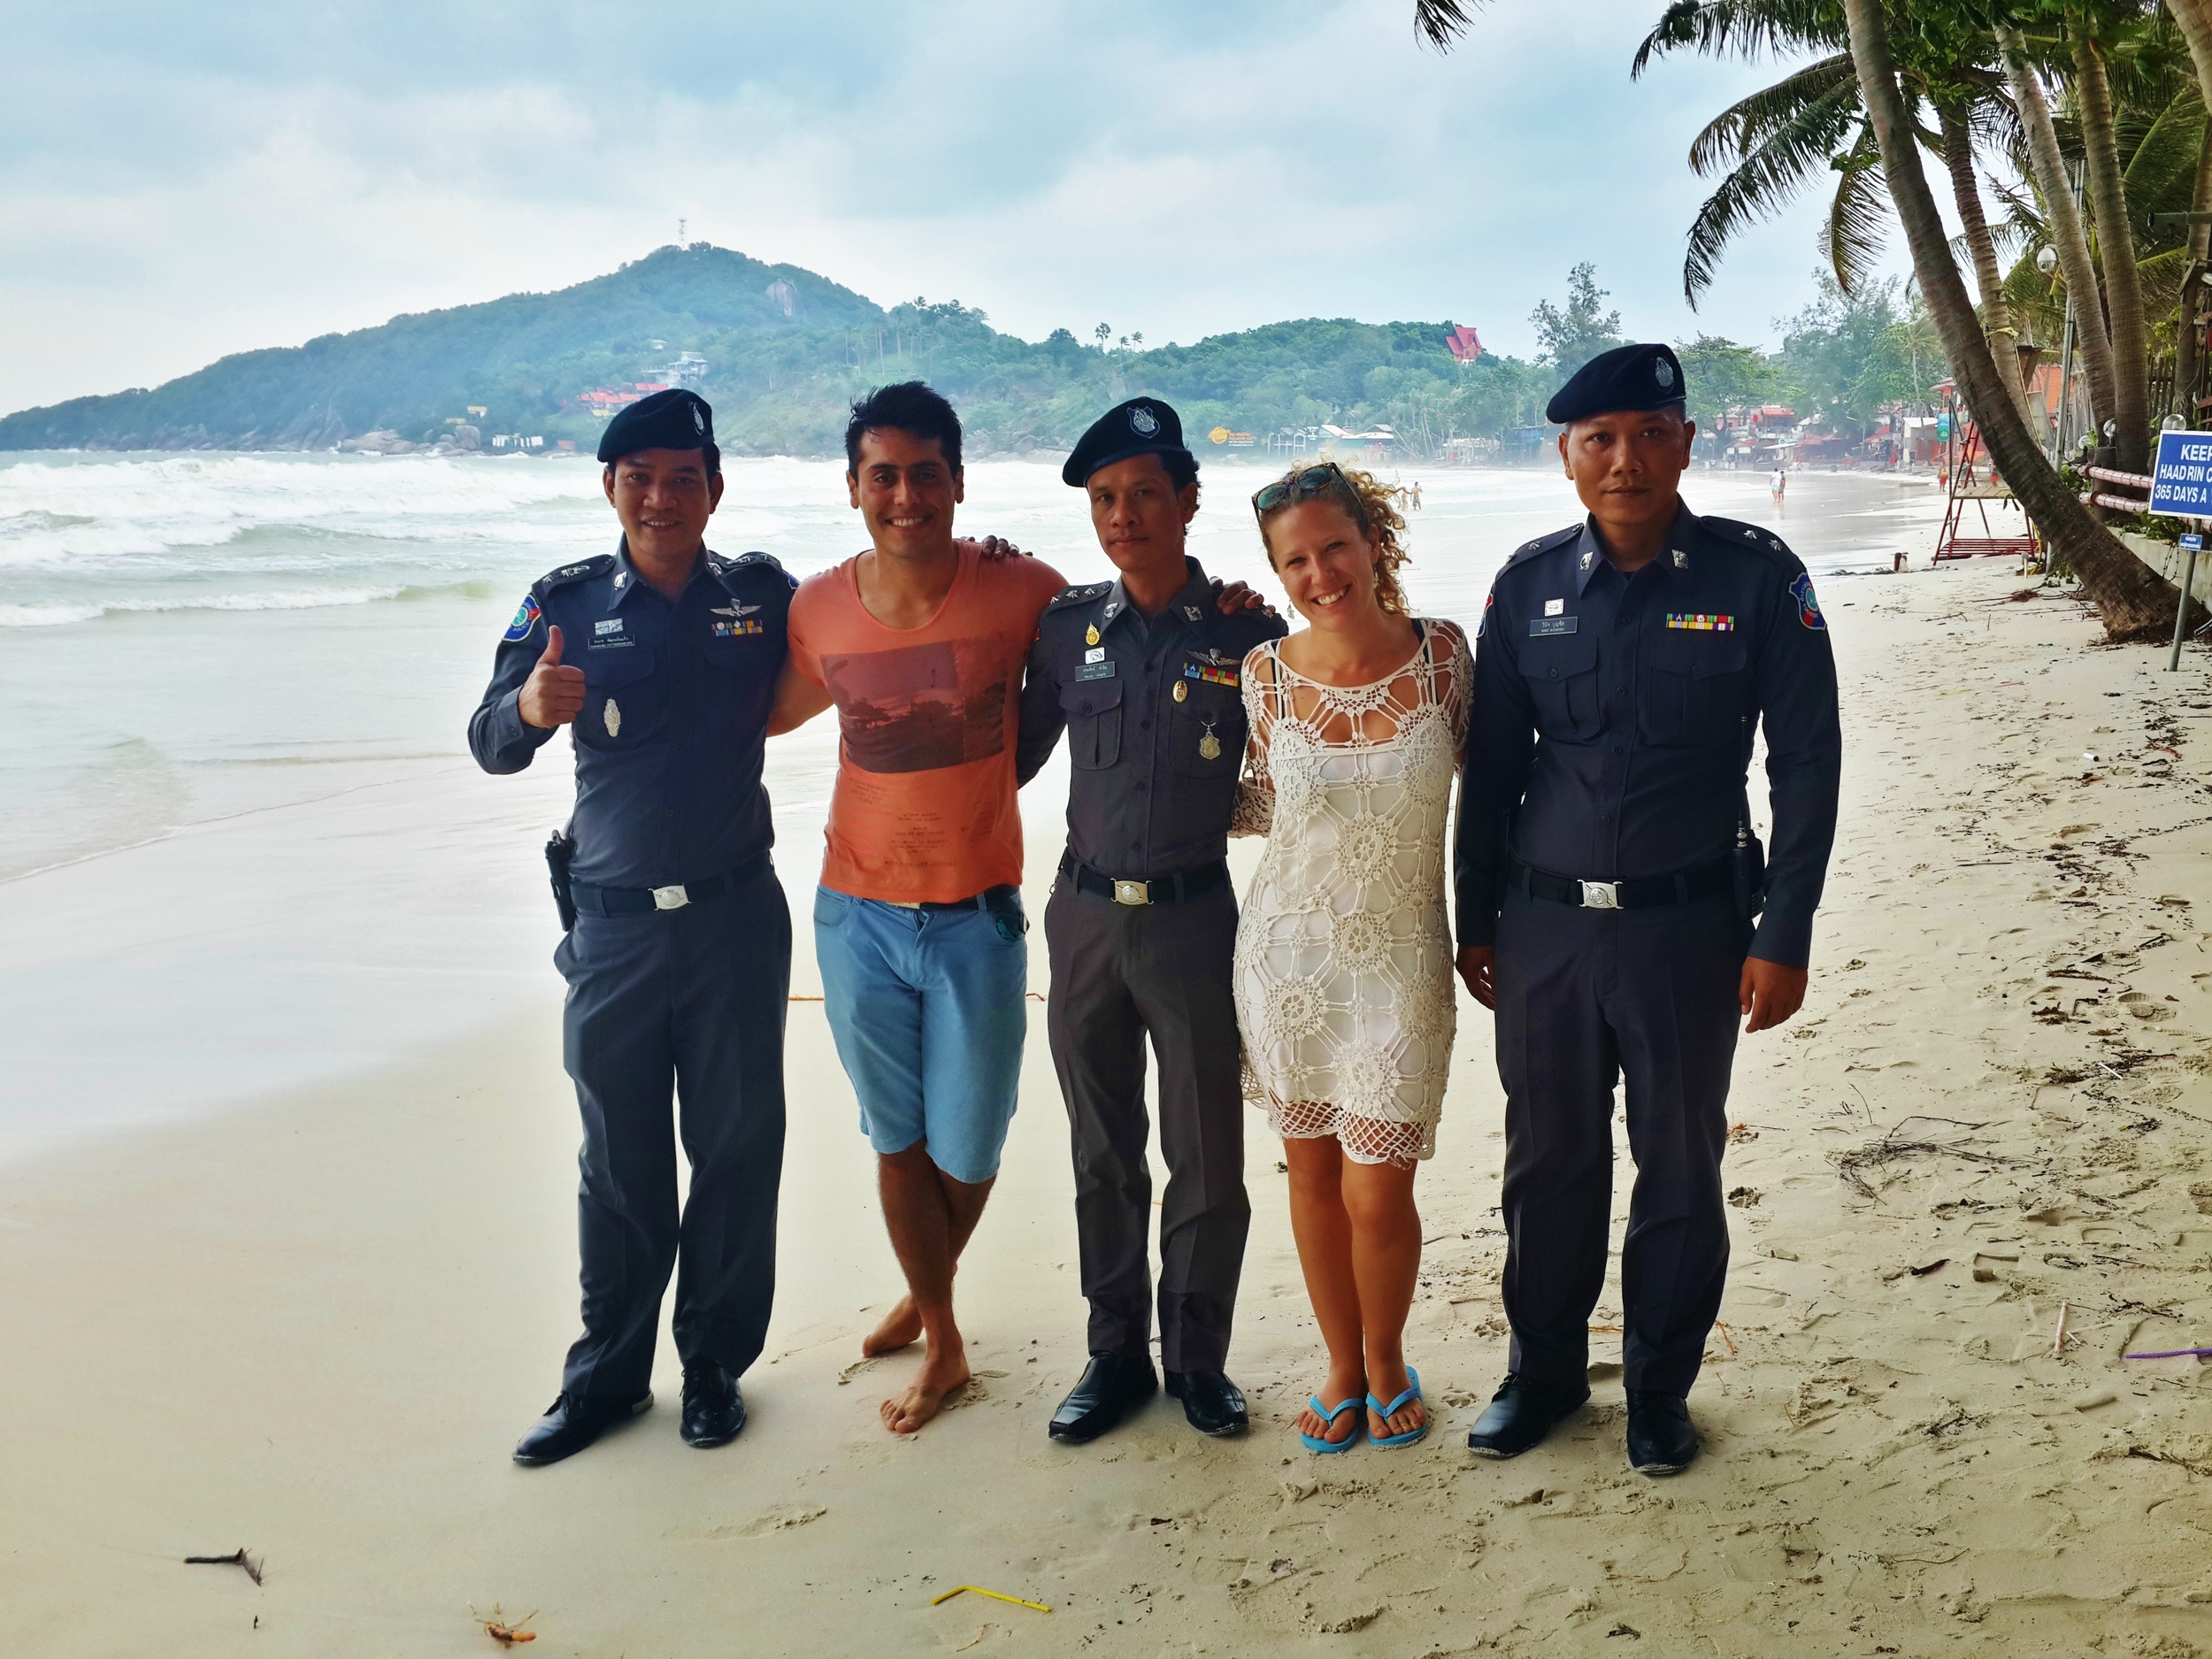 Friends, travelers and police officers of Thailand